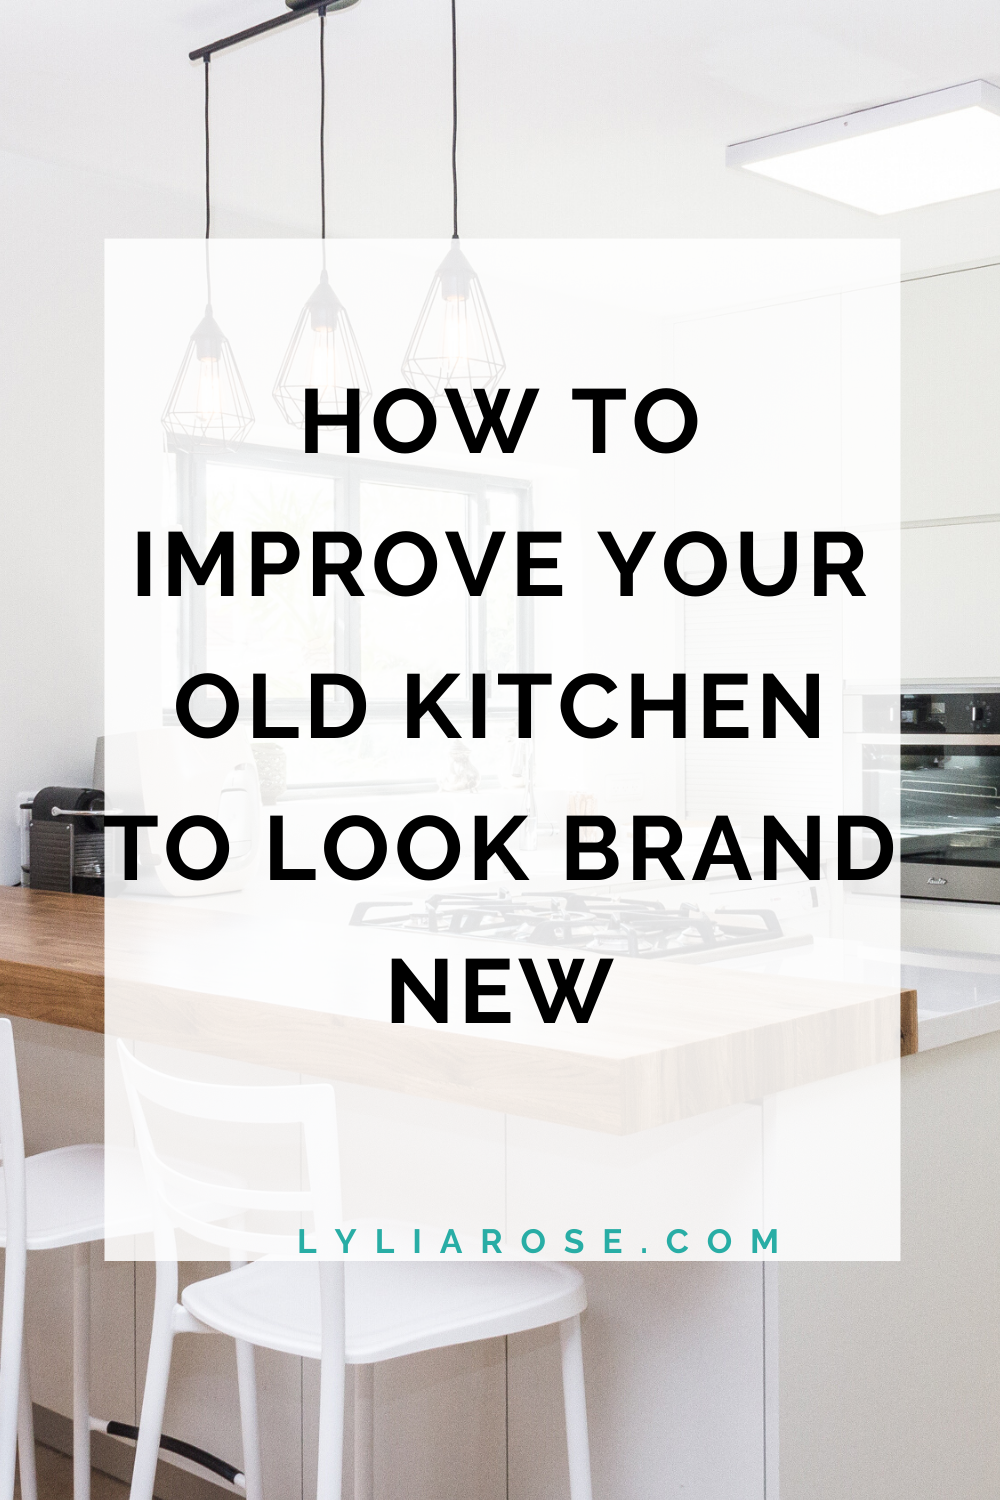 How to improve your old kitchen to look brand new